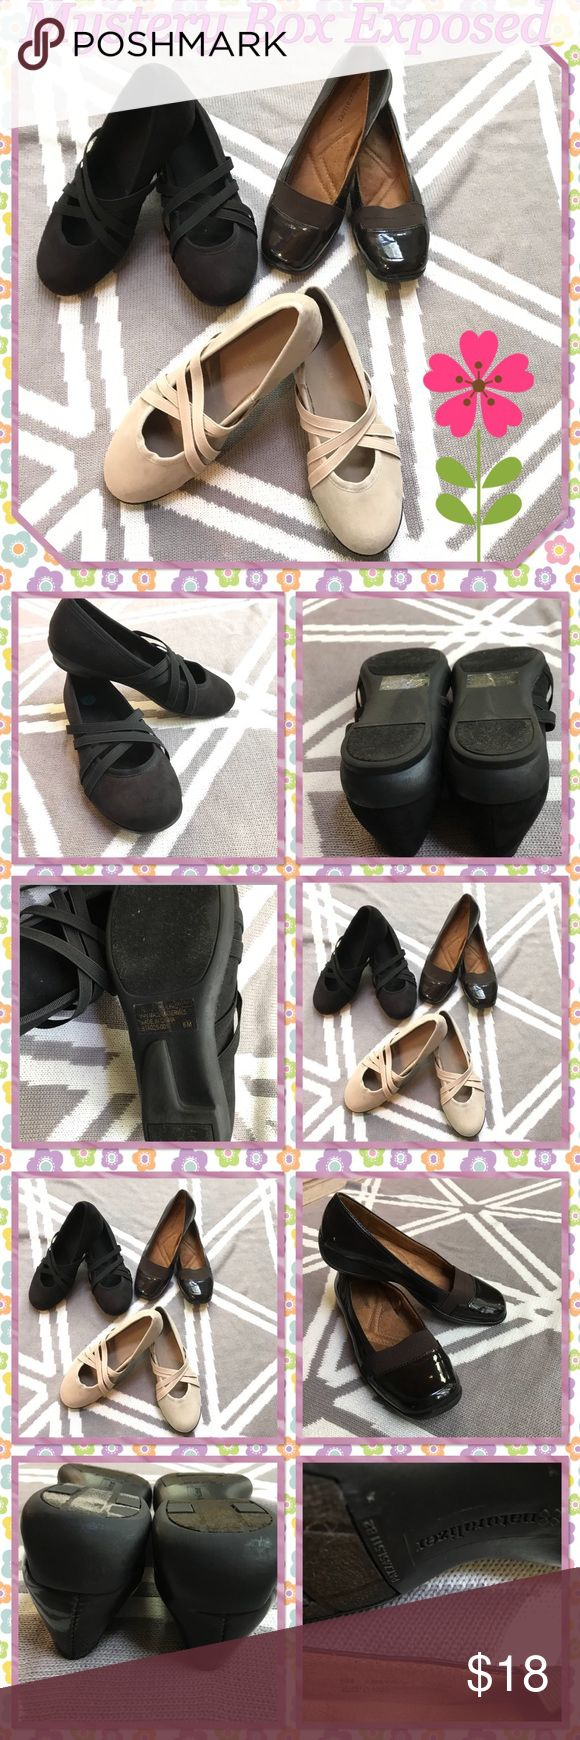 """🔮Mystery Box Exposed Shoes 🔮 Lot of 3 pairs of Size 6 Medium width ladies shoes with 1"""" heel. Black & Tan pairs are a brand called """"Classique,"""" with fabric uppers & the rest man-made materials.  Brown patent shoes are """"Naturalizers,"""" made with quality man-made materials. Gently worn, insoles are cushioned for stepping comfort. Price firm on Mystery Boxes. Fairly priced at $18. PKW Naturalizer, Classique Shoes Flats & Loafers"""